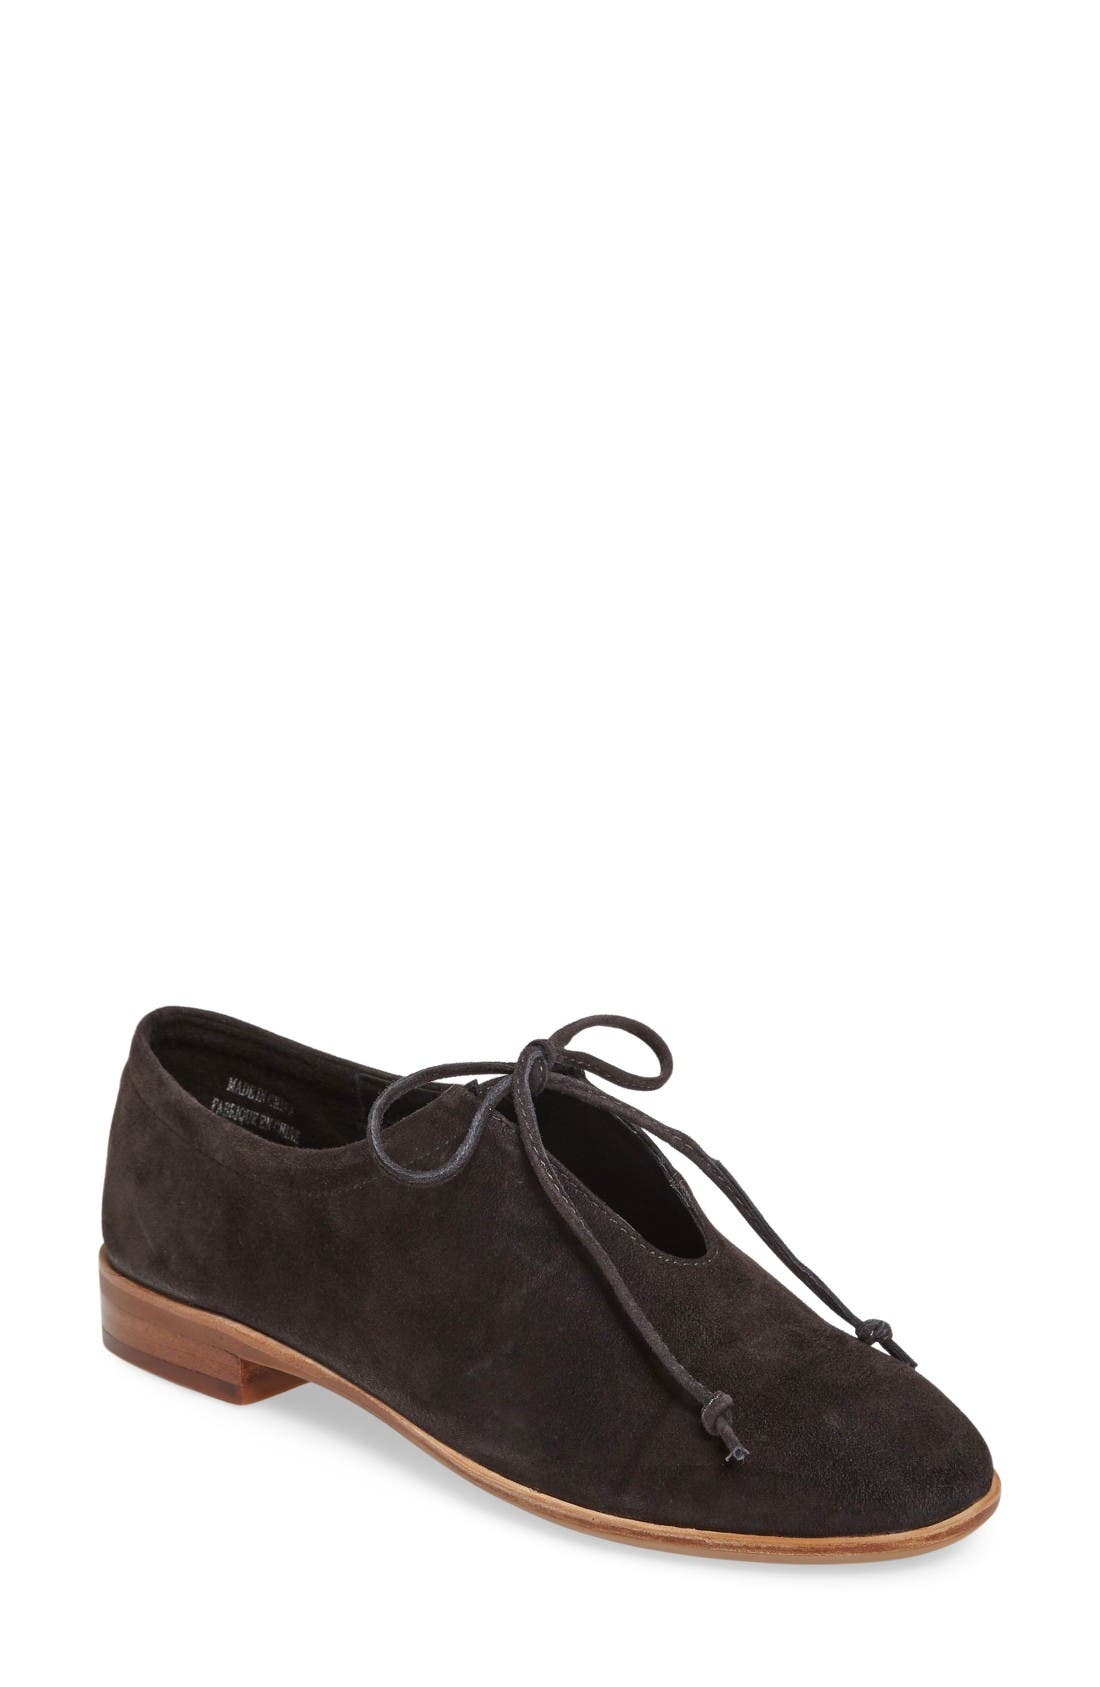 Jeffrey Campbell 'Prieto' Open Vamp Oxford